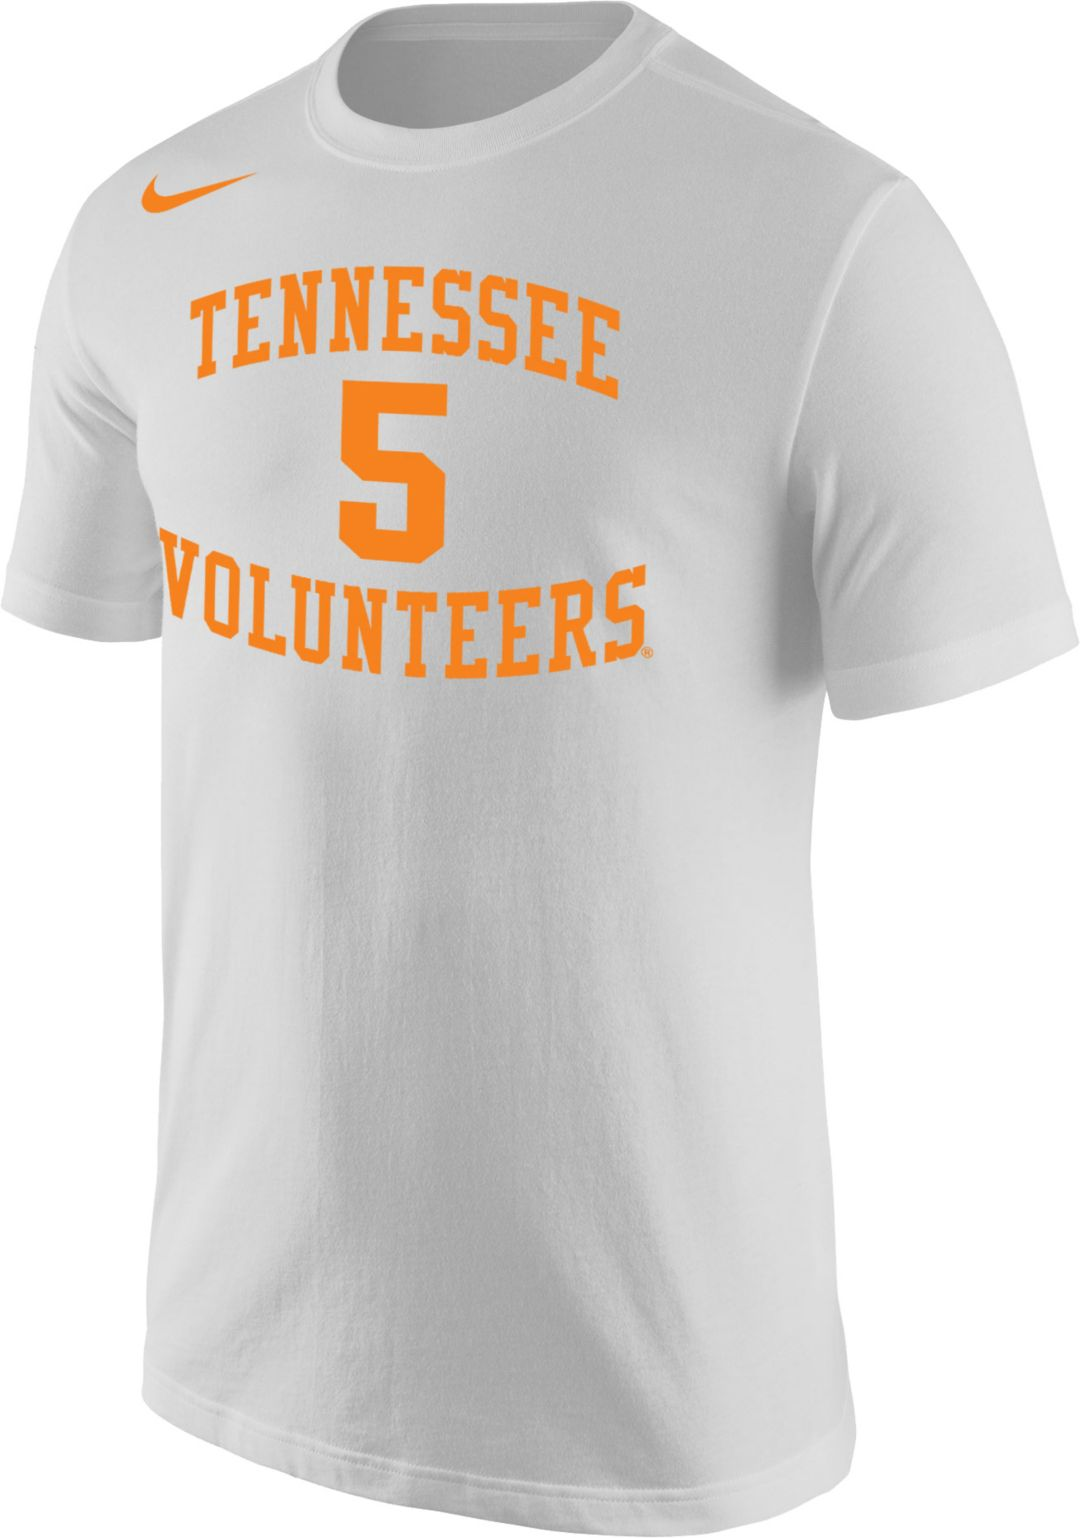 ae368caf0 Nike Men's Tennessee Volunteers #5 Dri-FIT Cotton White T-Shirt.  noImageFound. 1